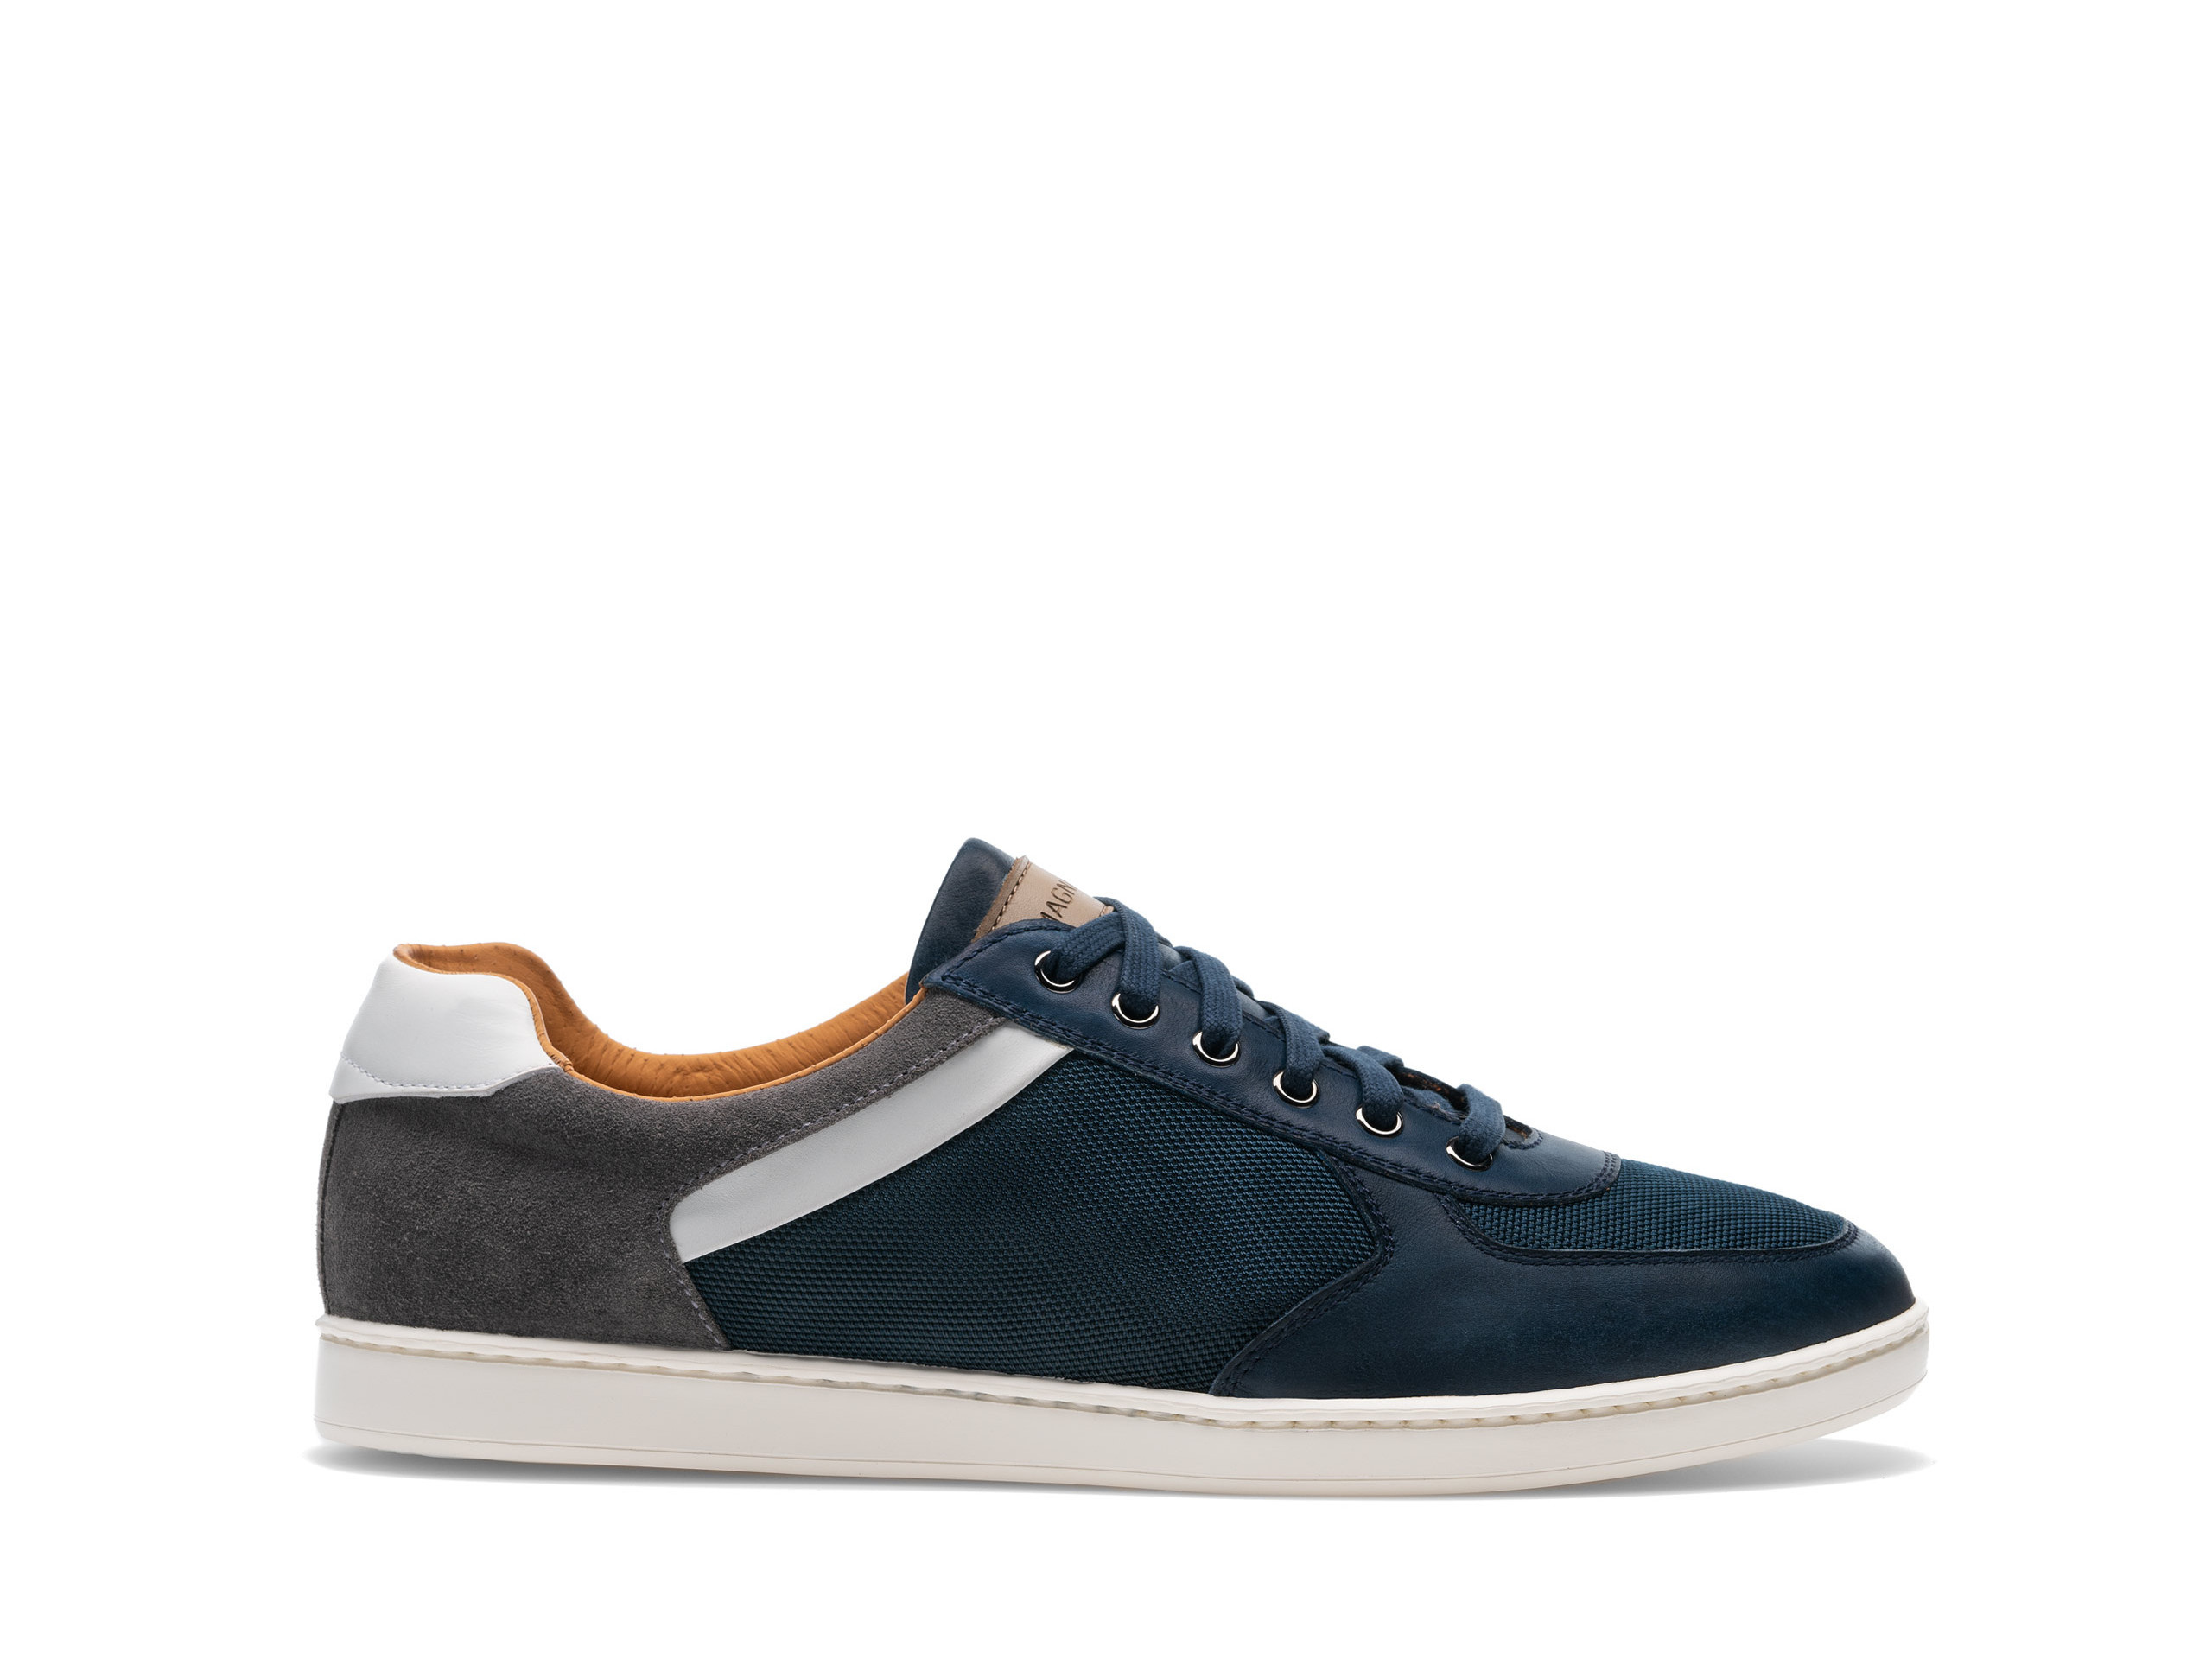 Side view of the Magnanni Echo Lo II Navy Men's Sneakers